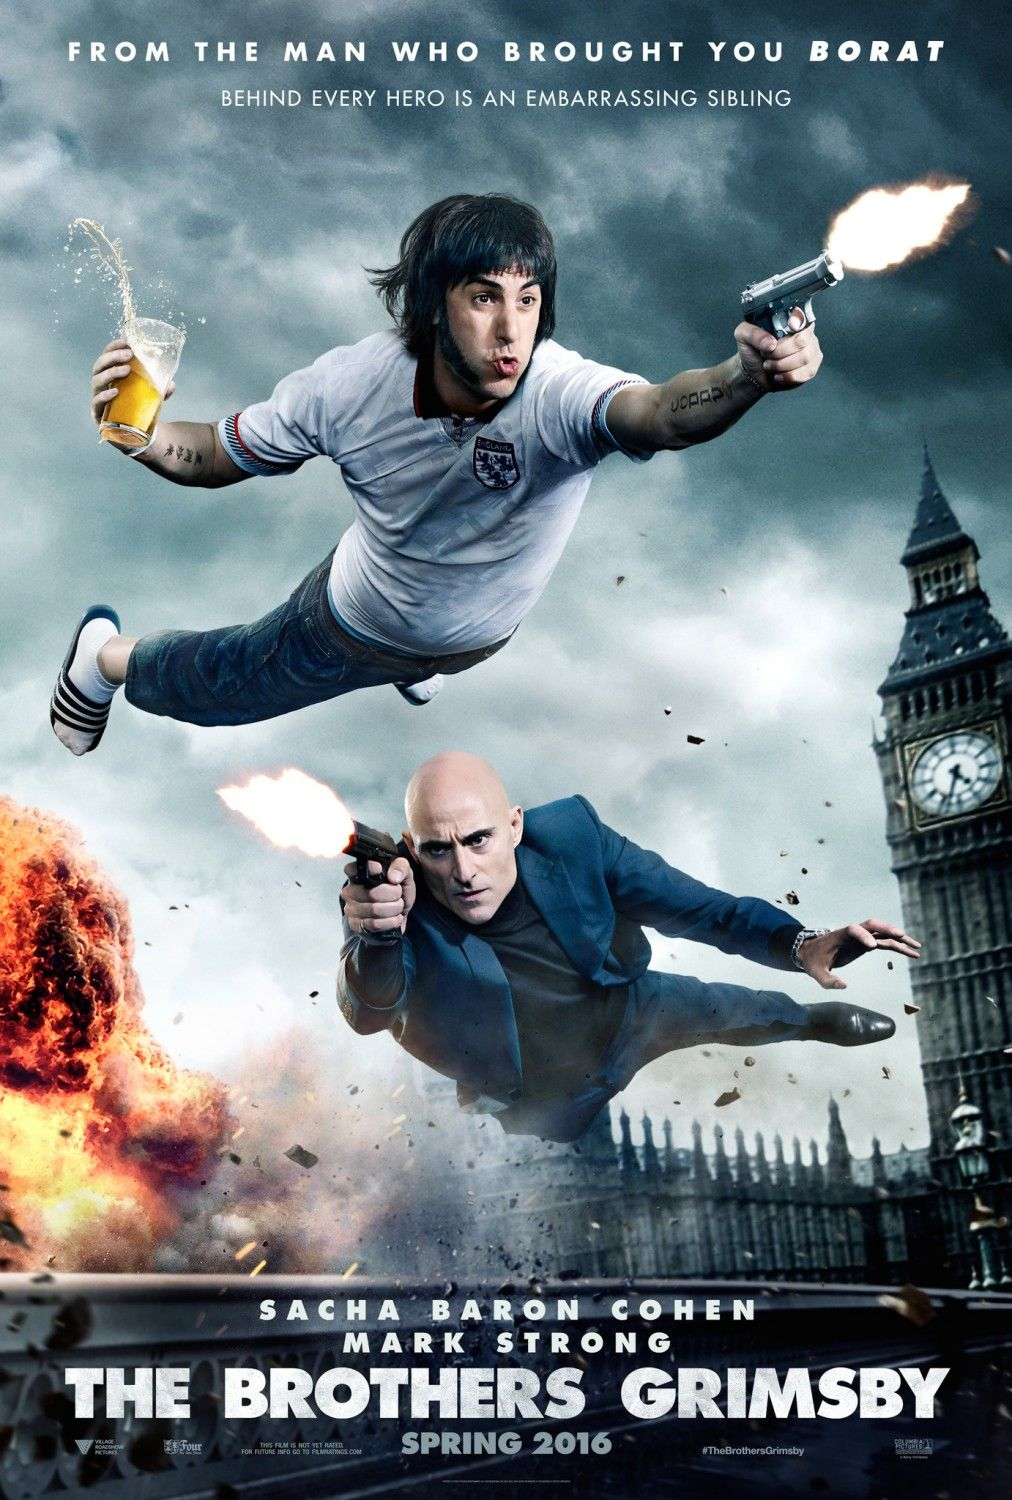 Grimsby Extra Large Movie Poster Image Internet Movie Poster Awards Gallery Full Movies Online Free Free Movies Online Grimsby